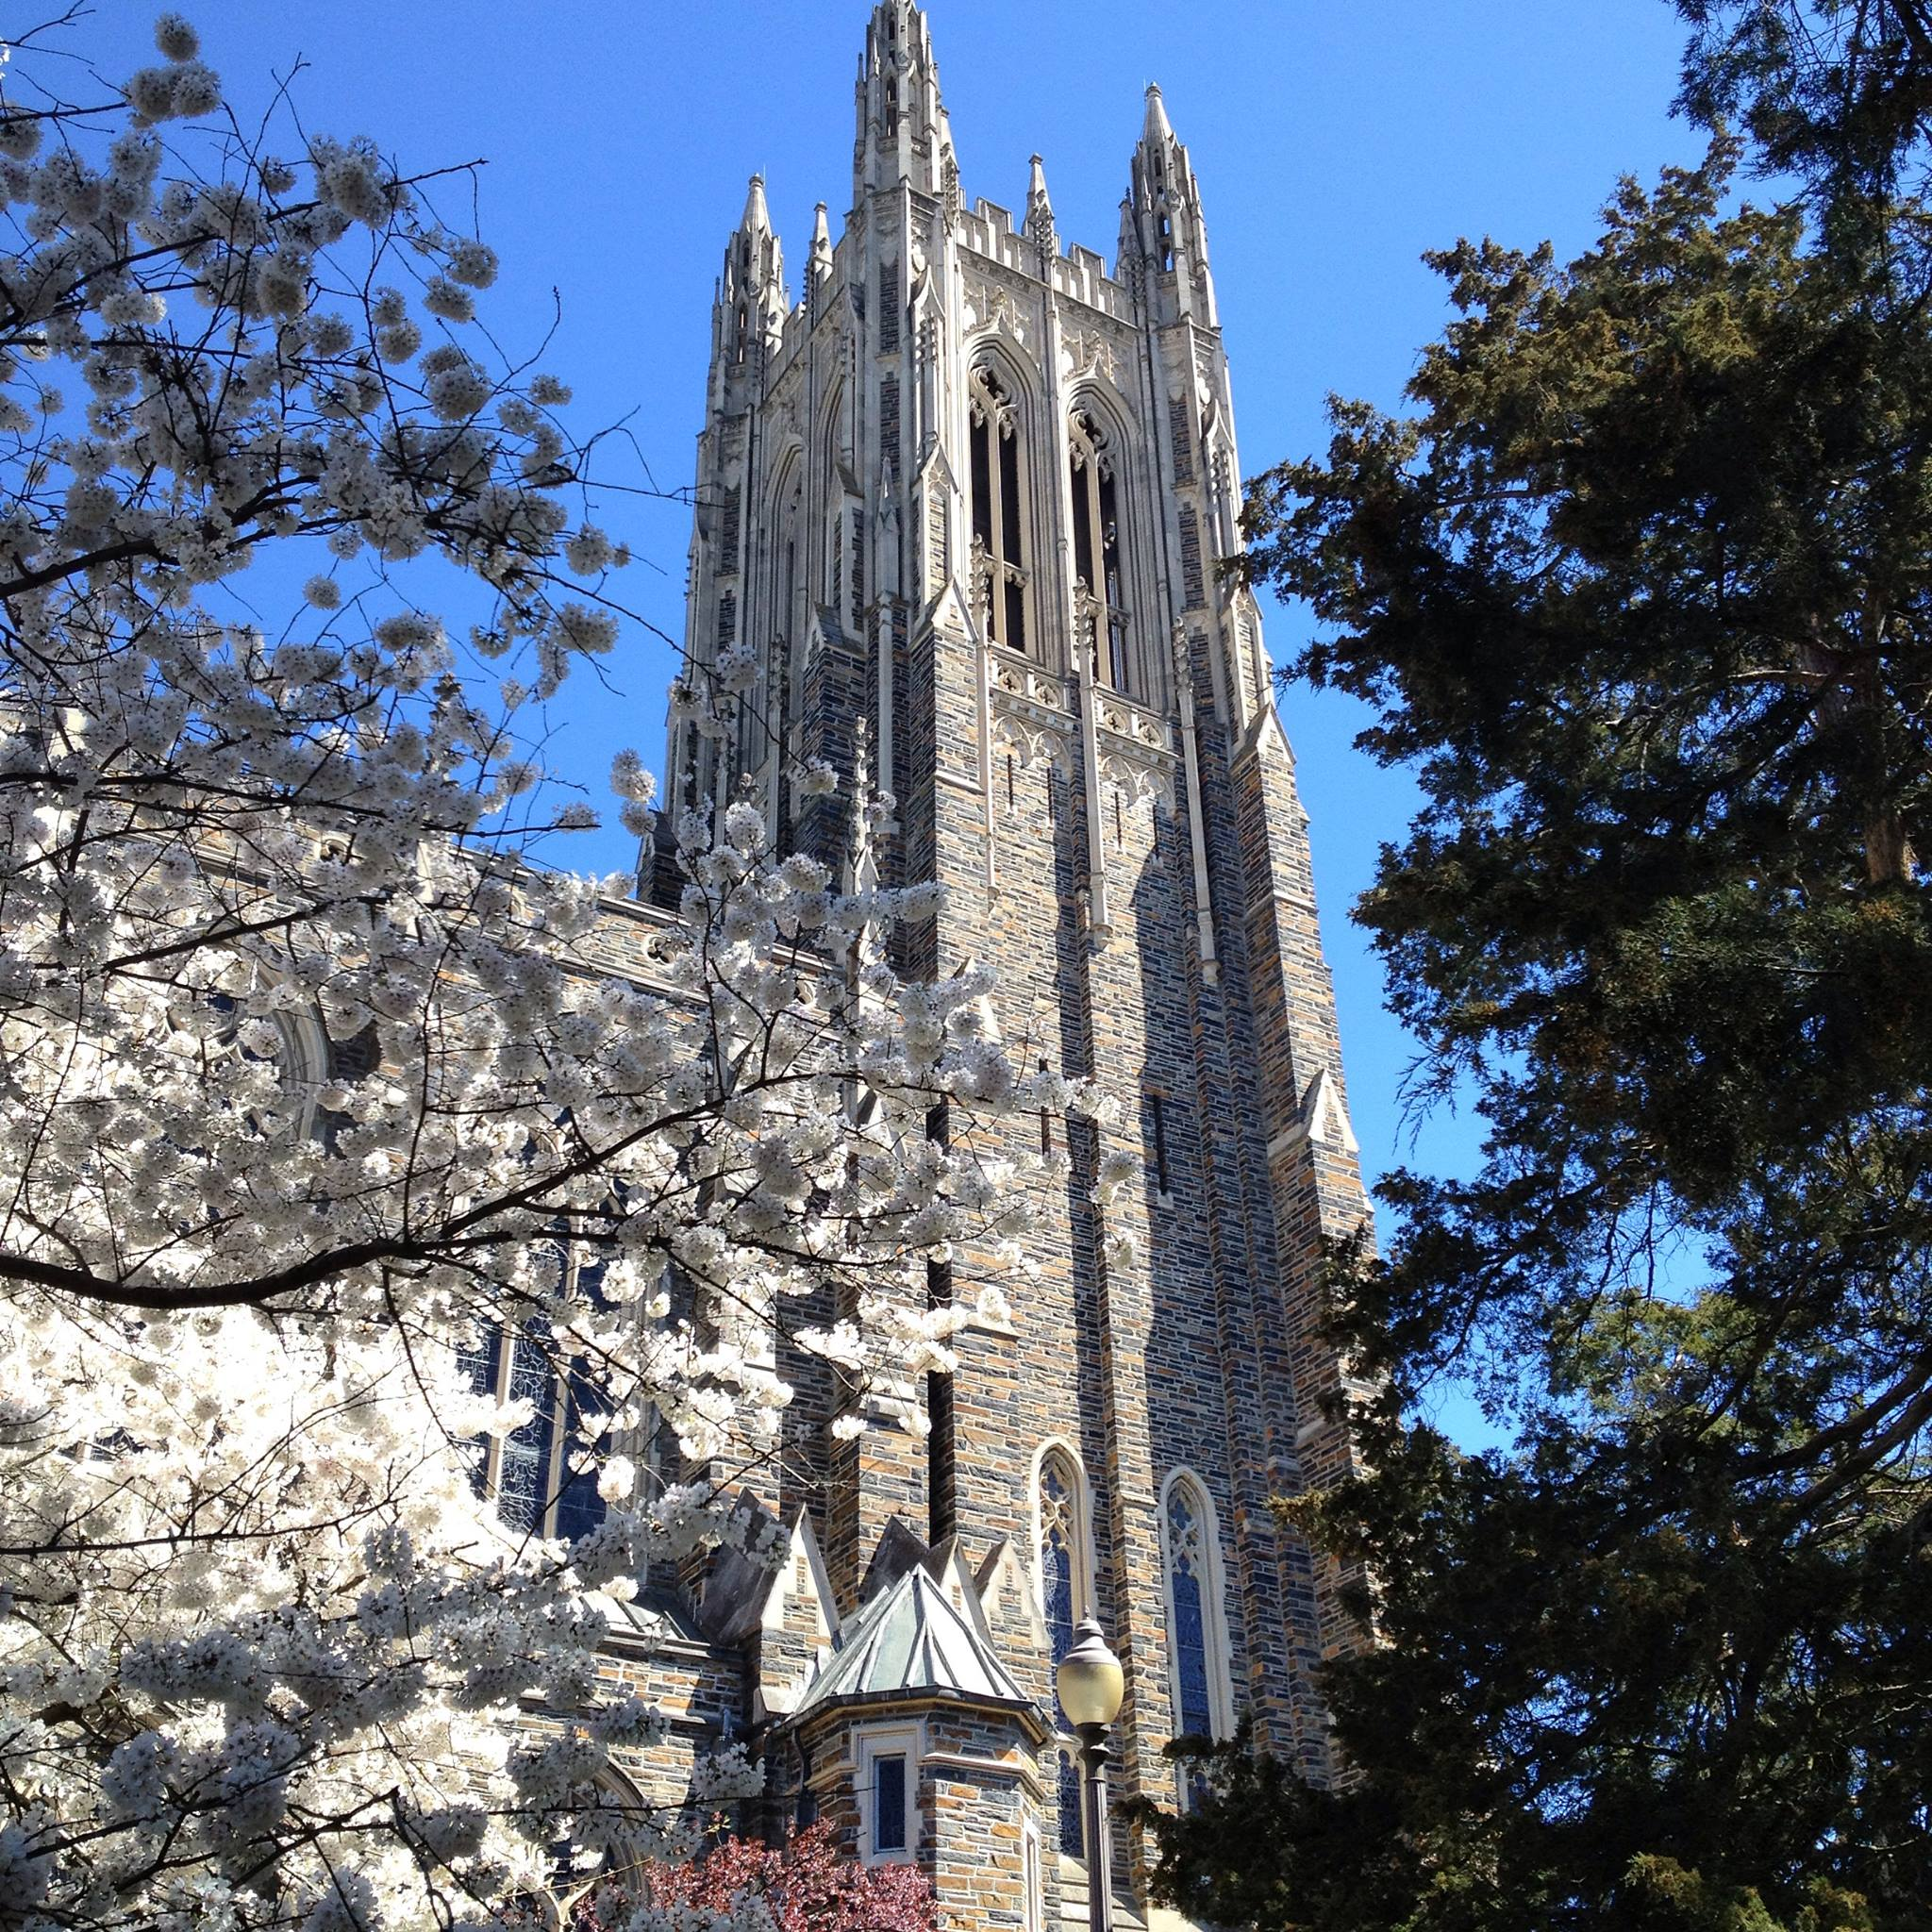 Want to learn about visiting college towns? Hear all about our favorite college towns - and the cities that host them - at the next #TMOM Twitter Party.